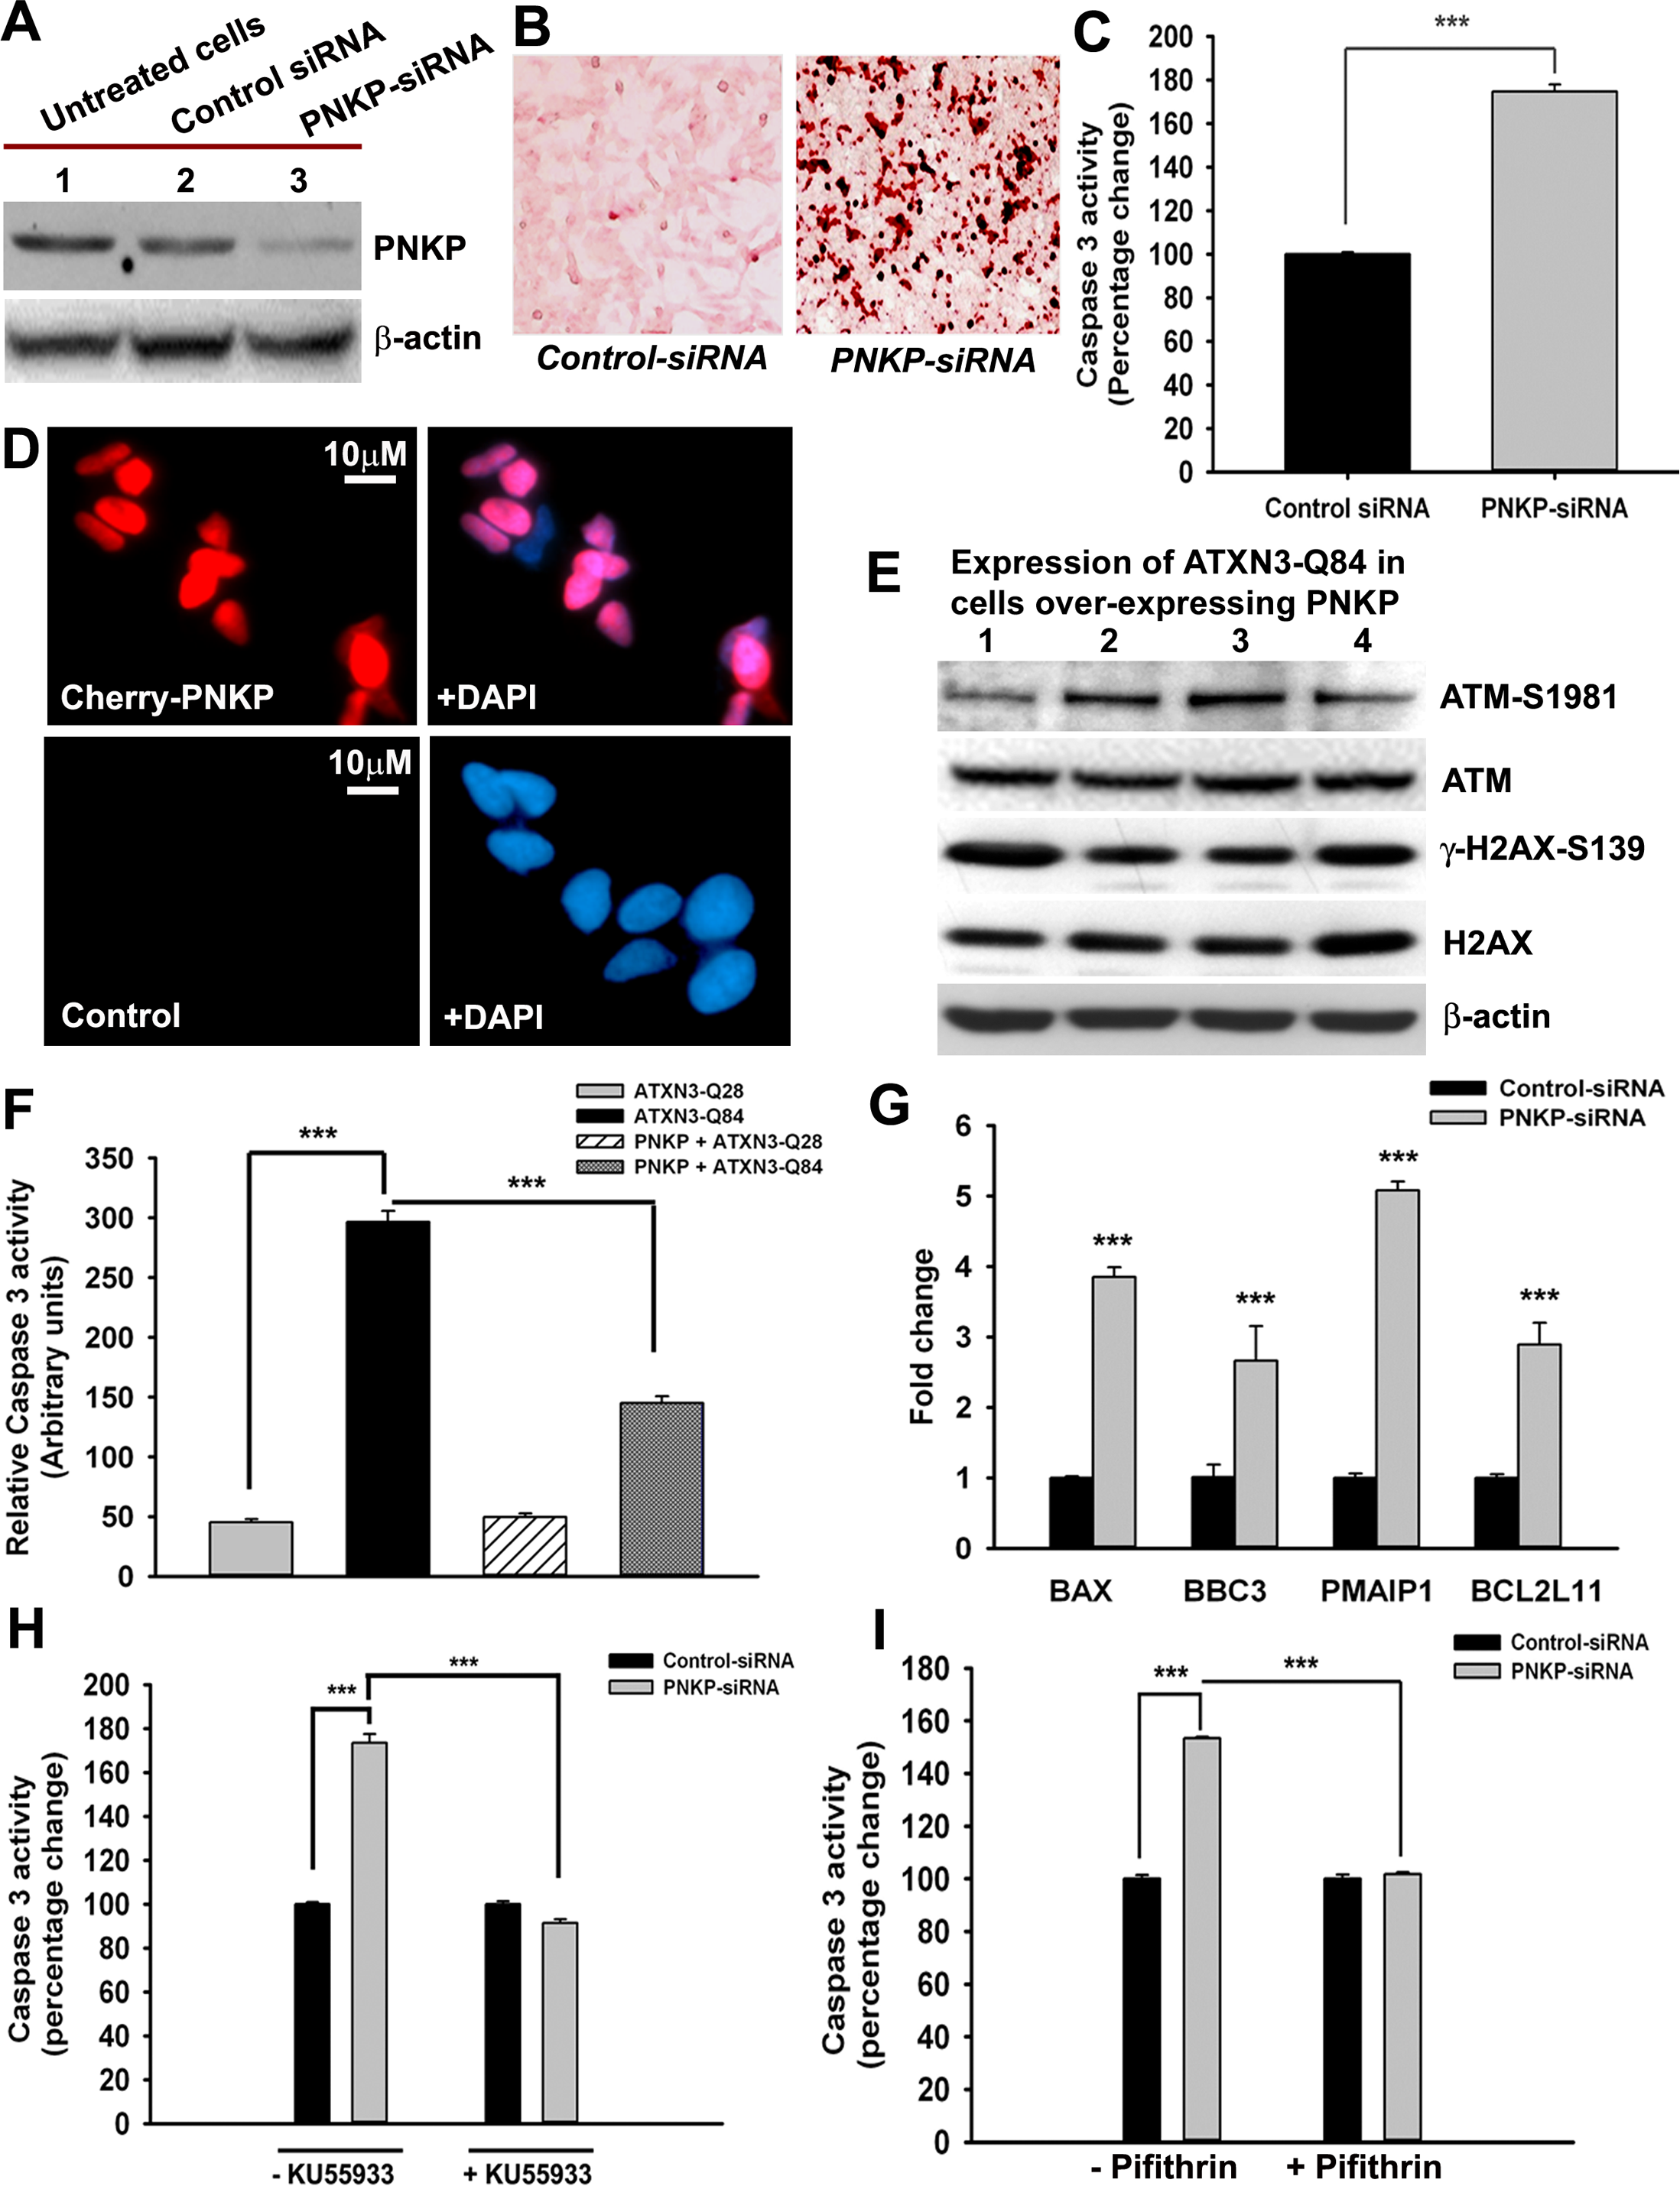 The mutant ATXN3-induced apoptotic pathway is rescued by PNKP-overexpression or inhibition of ATM and p53.